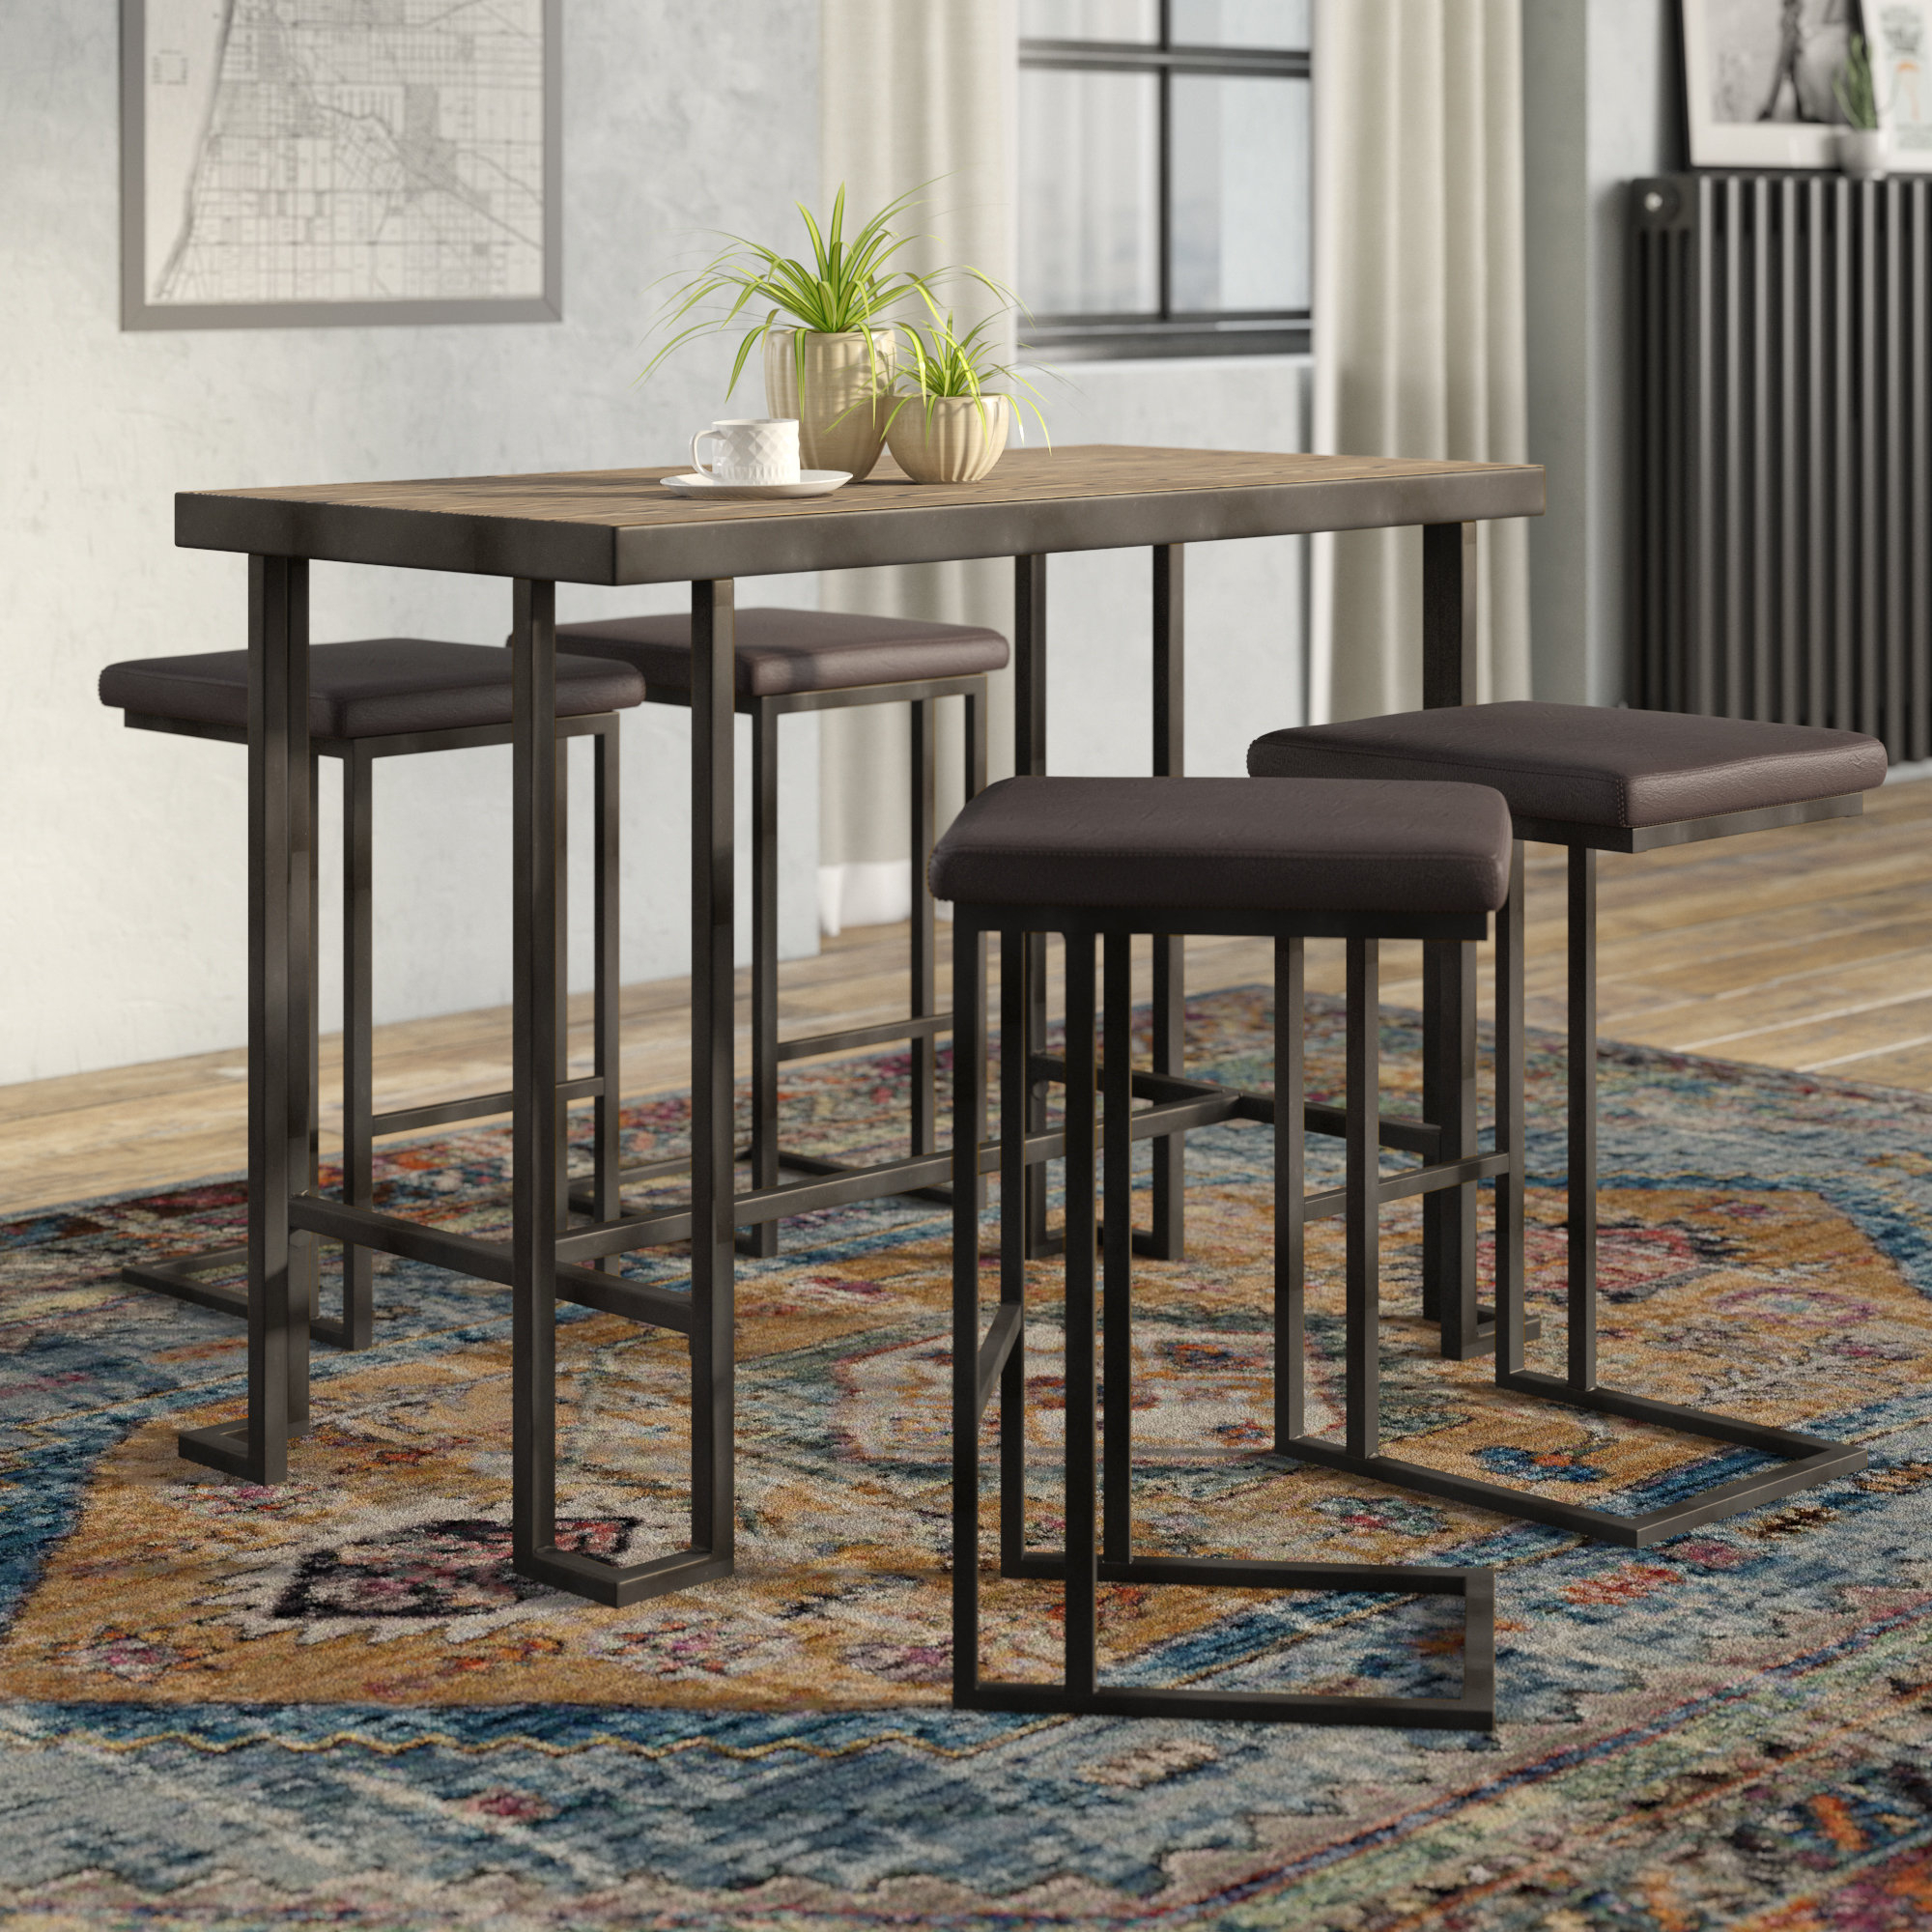 Widely Used Calistoga 5 Piece Counter Height Pub Table Set Within Anette 3 Piece Counter Height Dining Sets (View 9 of 20)